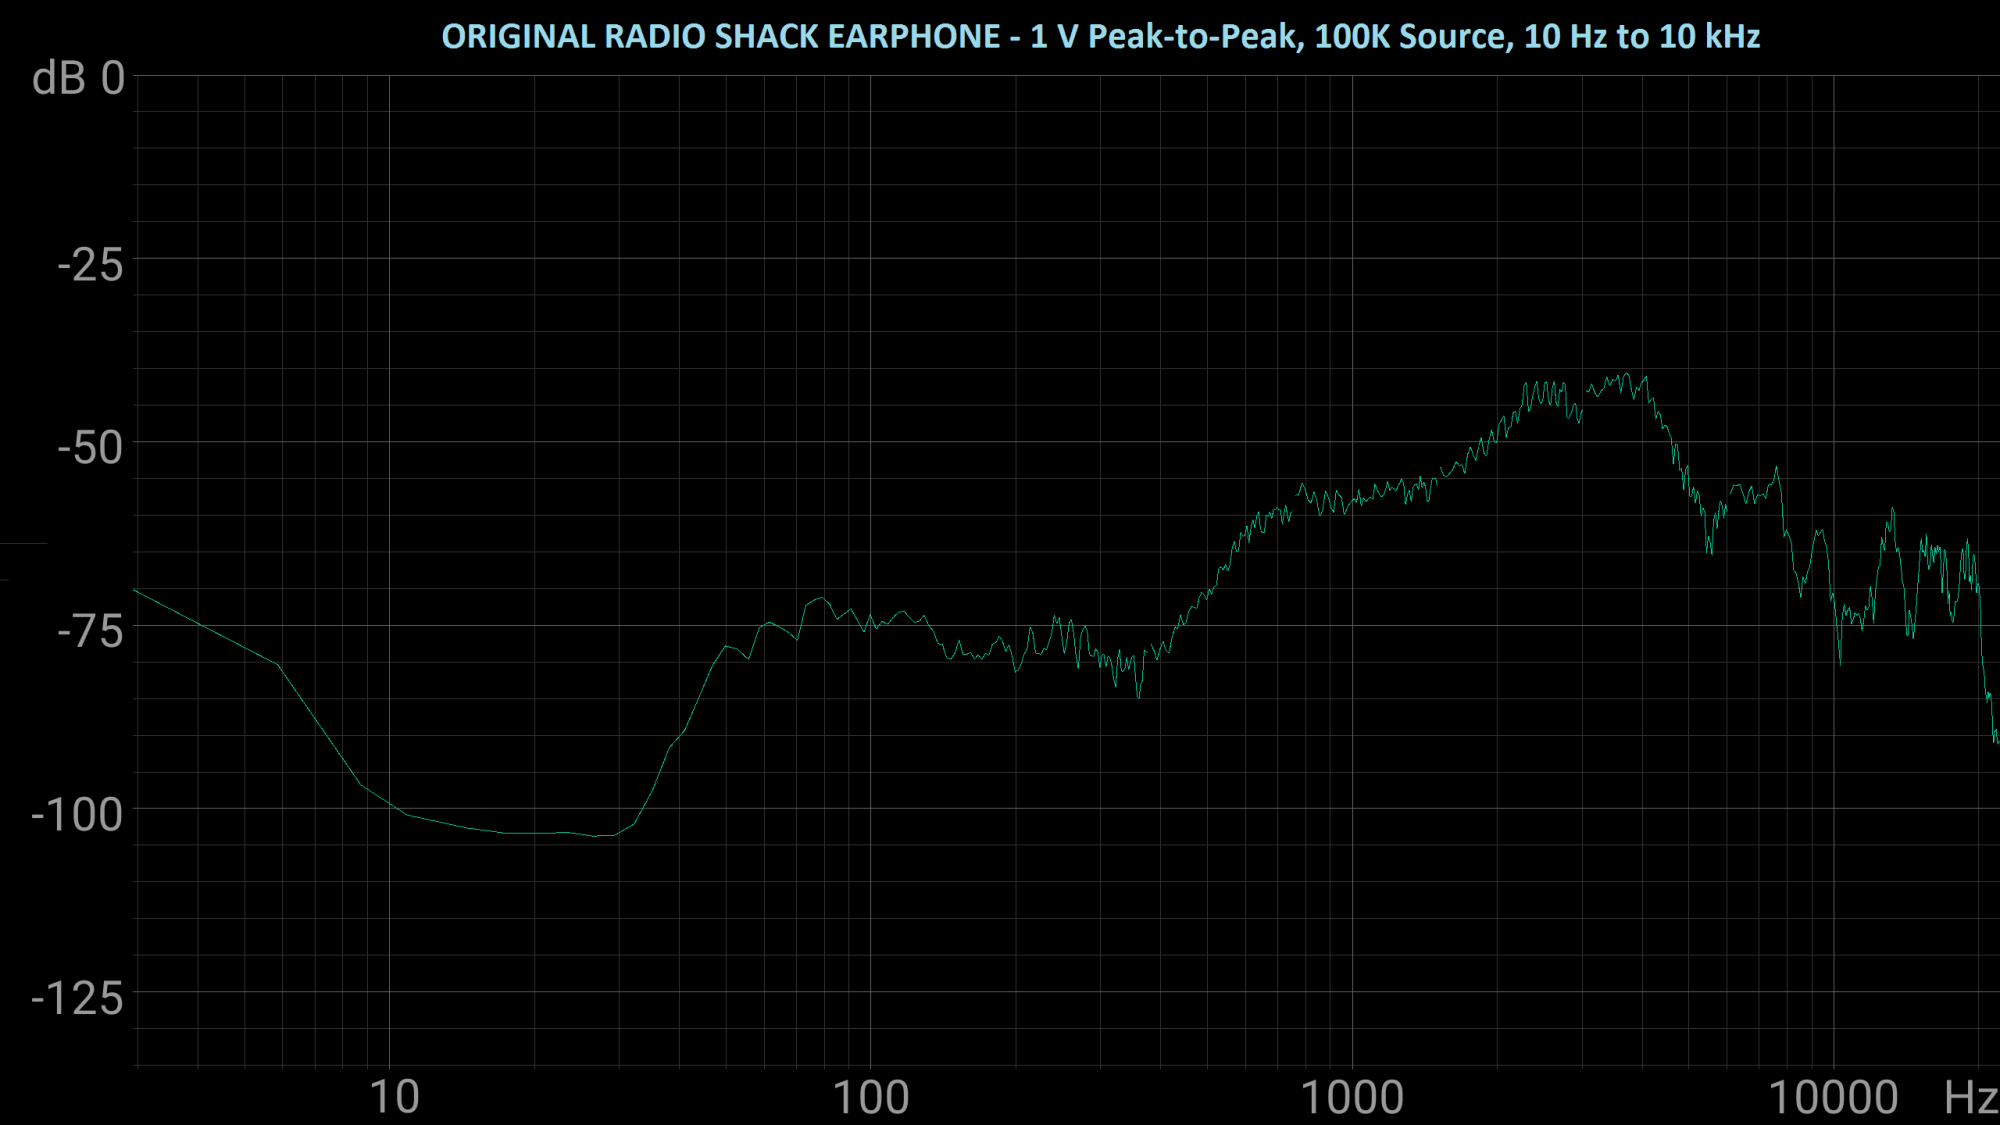 hight resolution of the amplified parts earphone loaded down my radio test circuit far more than the original radio shack earphone did but appears to have almost made up for